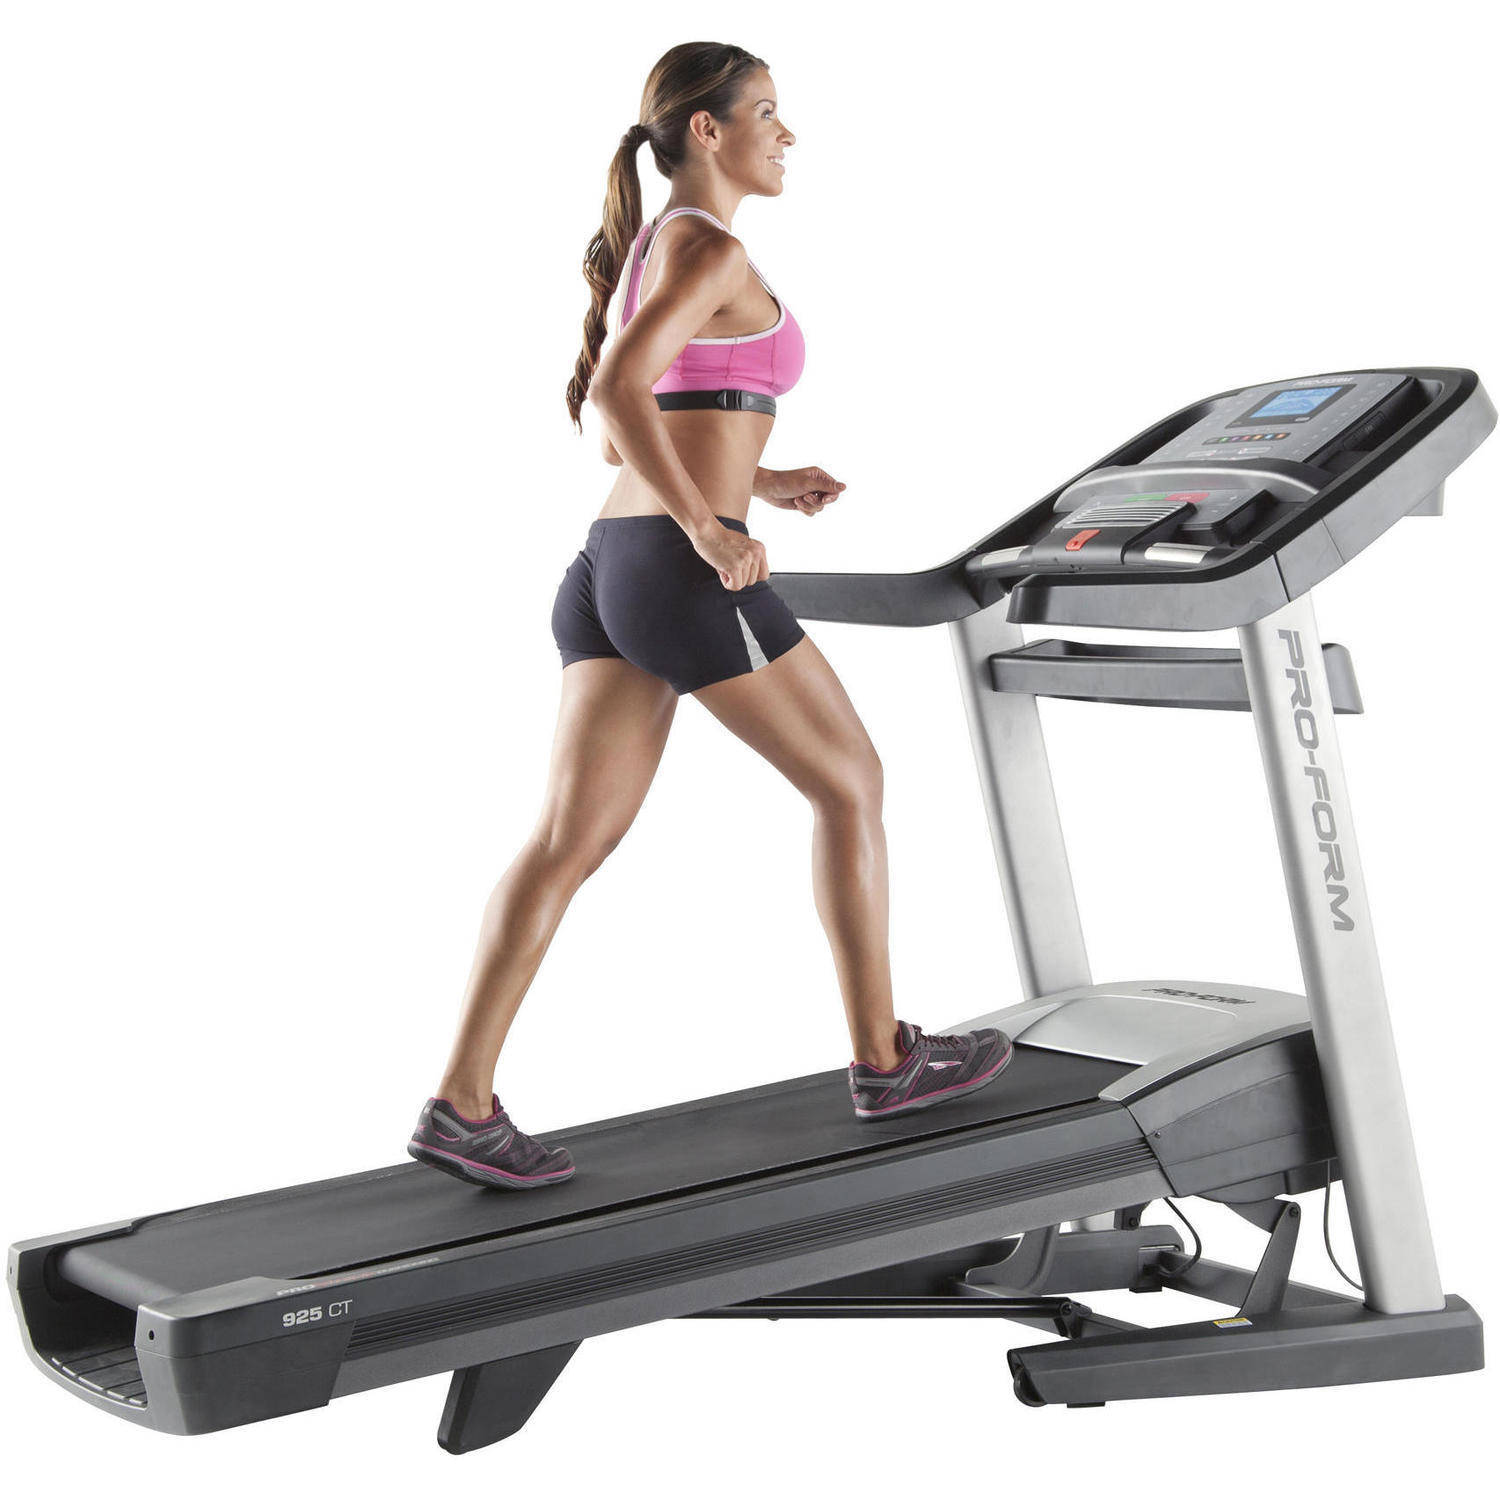 ProForm 925 CT Treadmill by Icon Health and Fitness Inc.